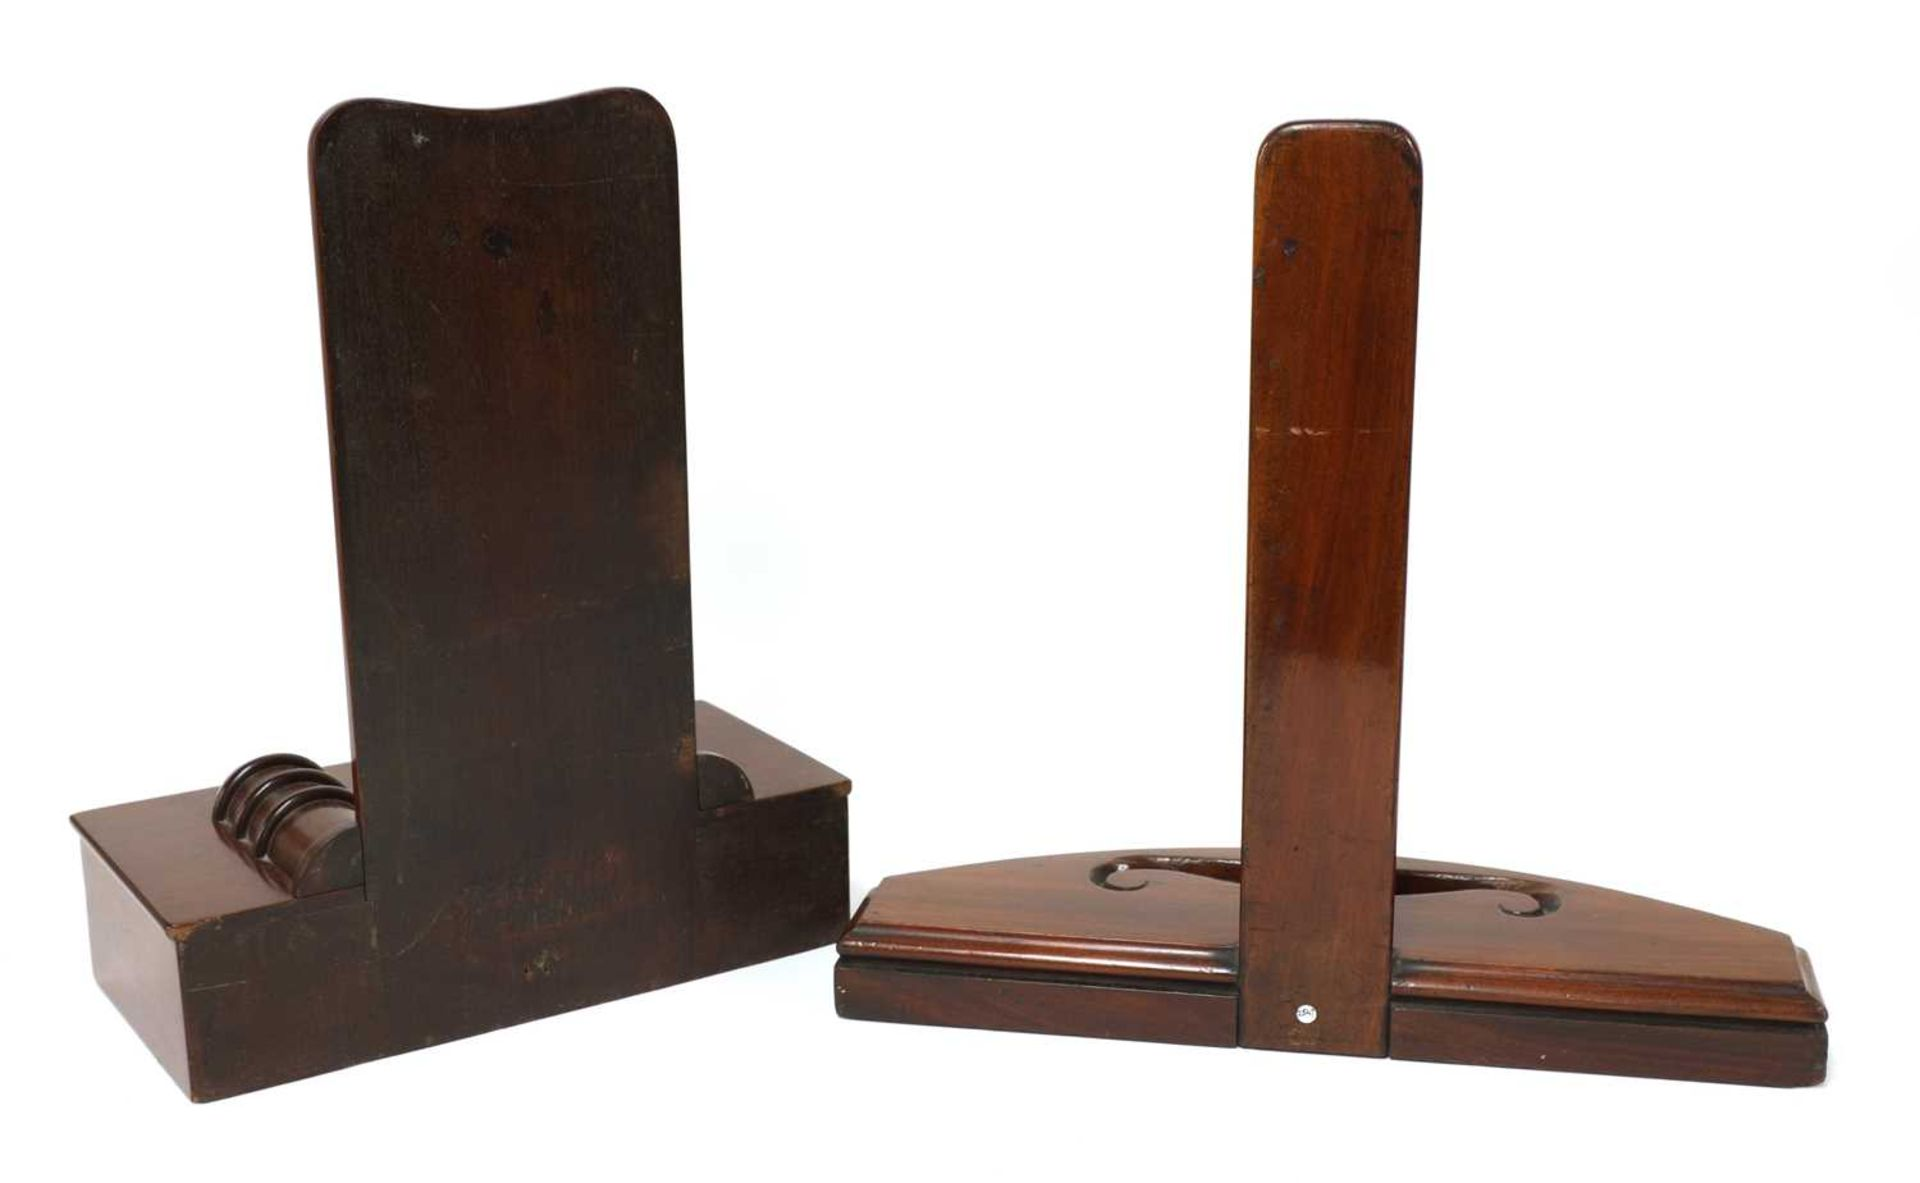 Two mahogany plate stands, - Image 2 of 2